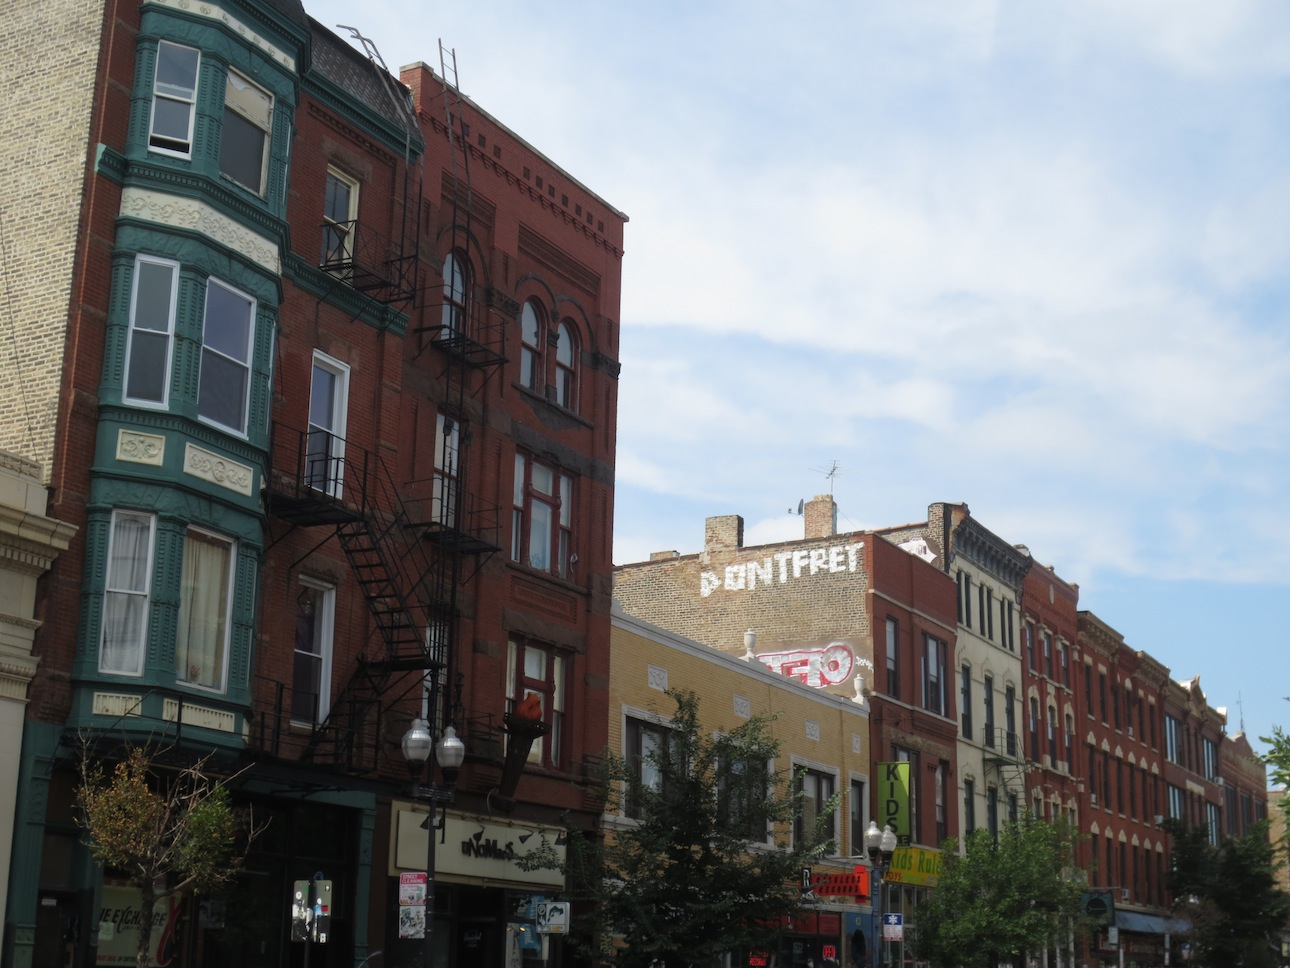 A view of three buildings in Wicker Park.